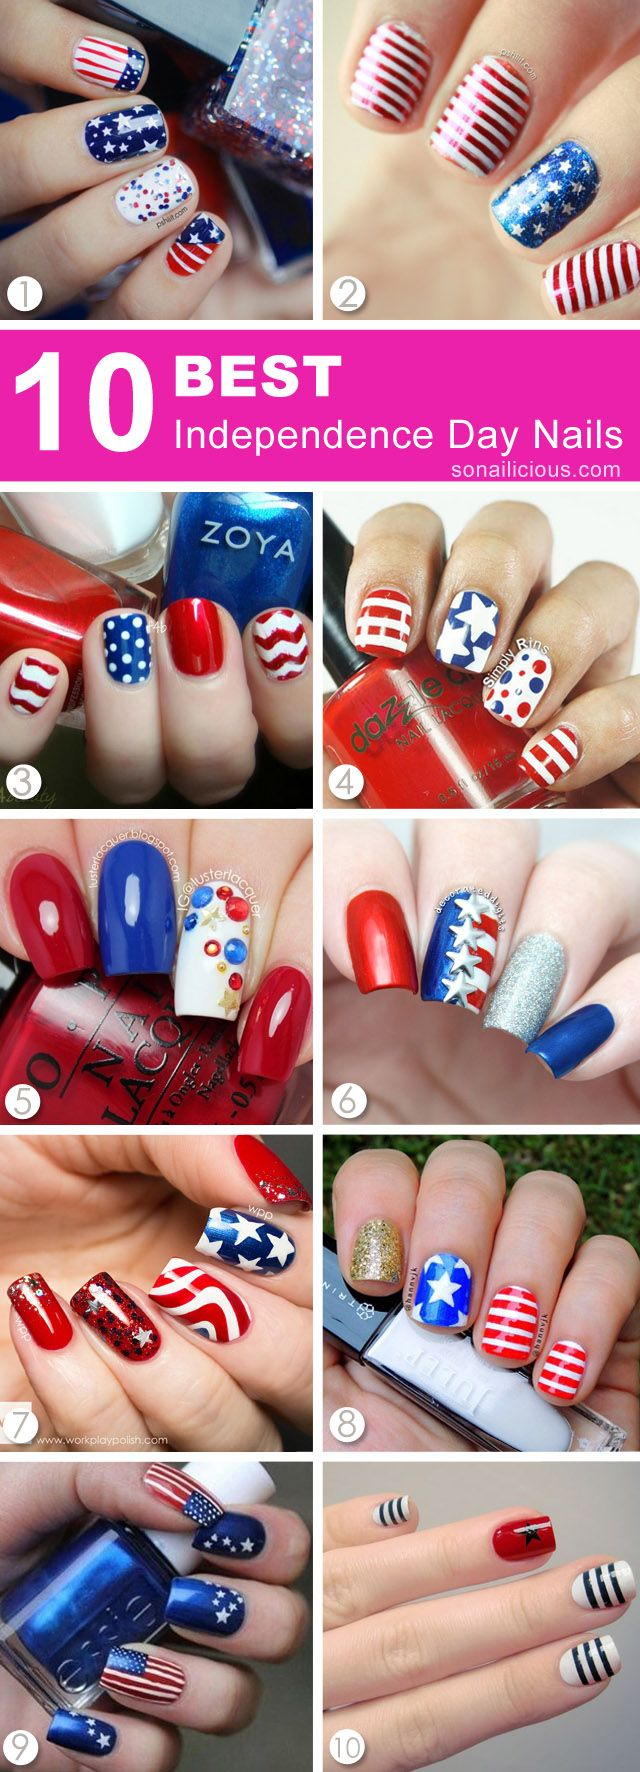 best 4th of july nails, independence day nails